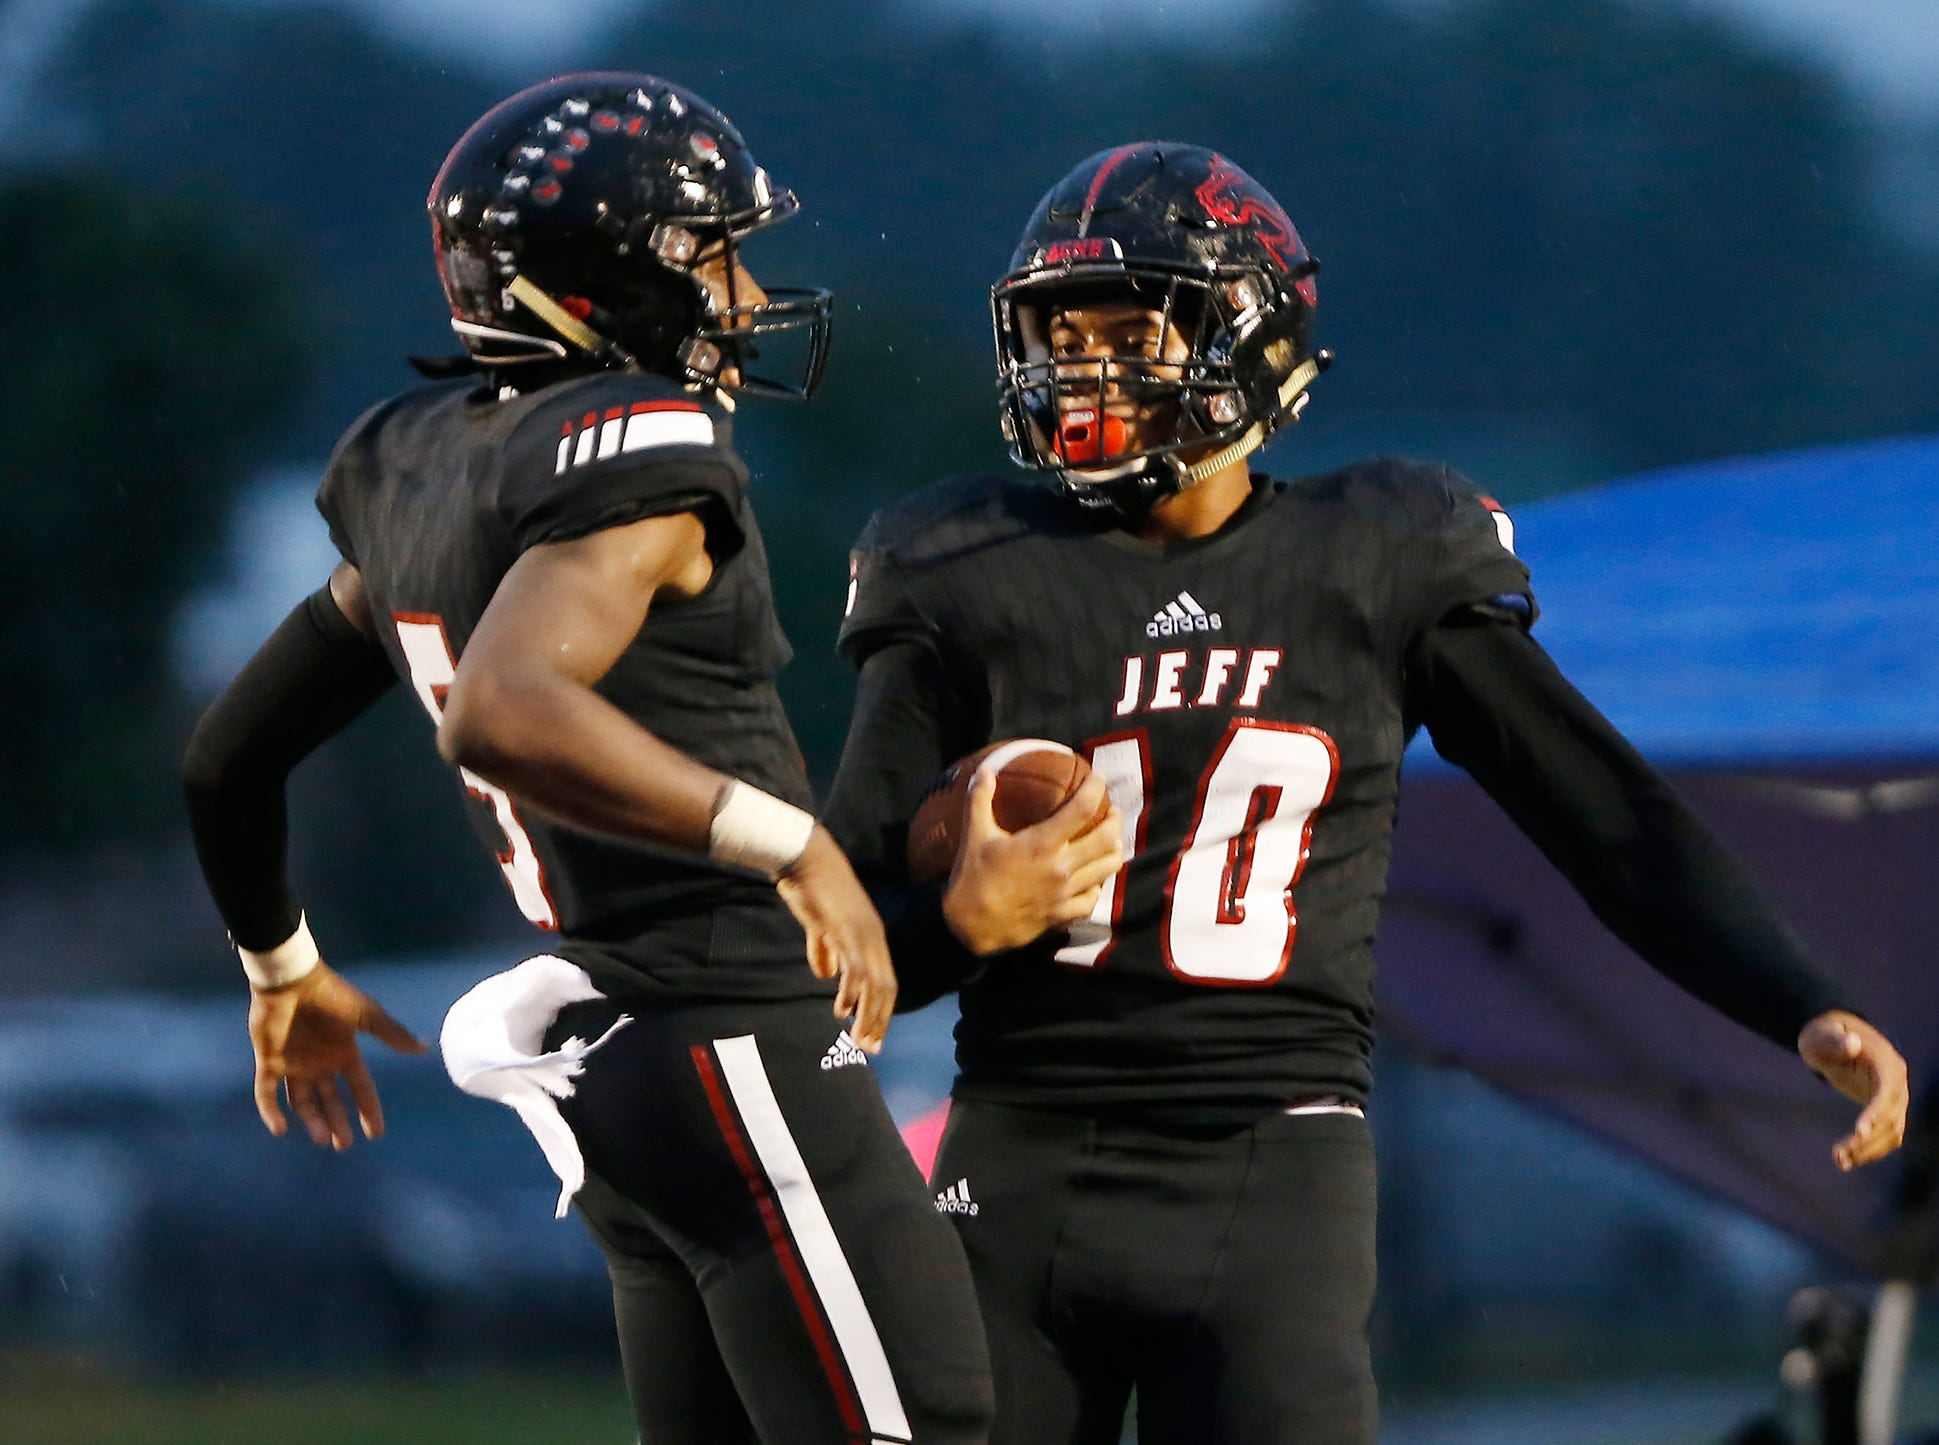 Zion Austin, right, of Lafayette Jeff celebrates with teammate Brian Jenkins after his second quarter touchdown reception against Harrison Friday, September 7, 2018, at Scheumann Stadium.